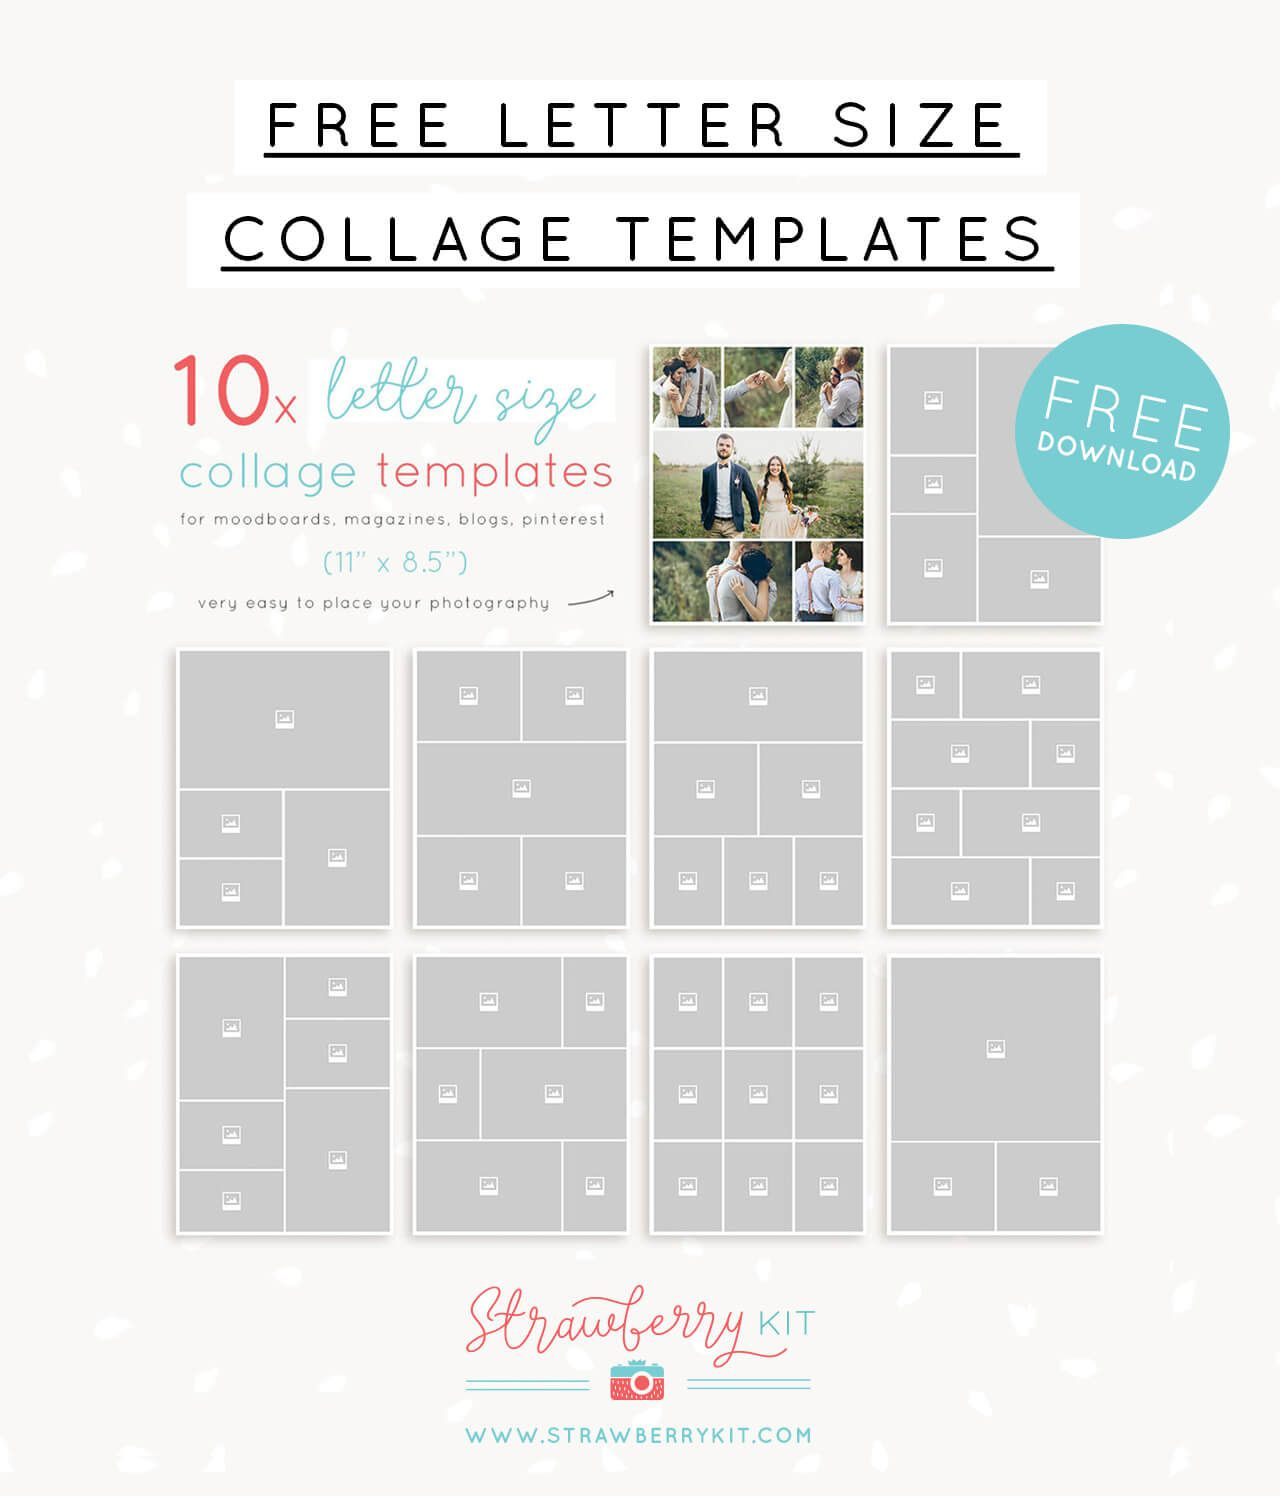 004 Fantastic Free Photo Collage Template Psd Highest Quality  Photoshop Download Heart Shaped For ElementFull